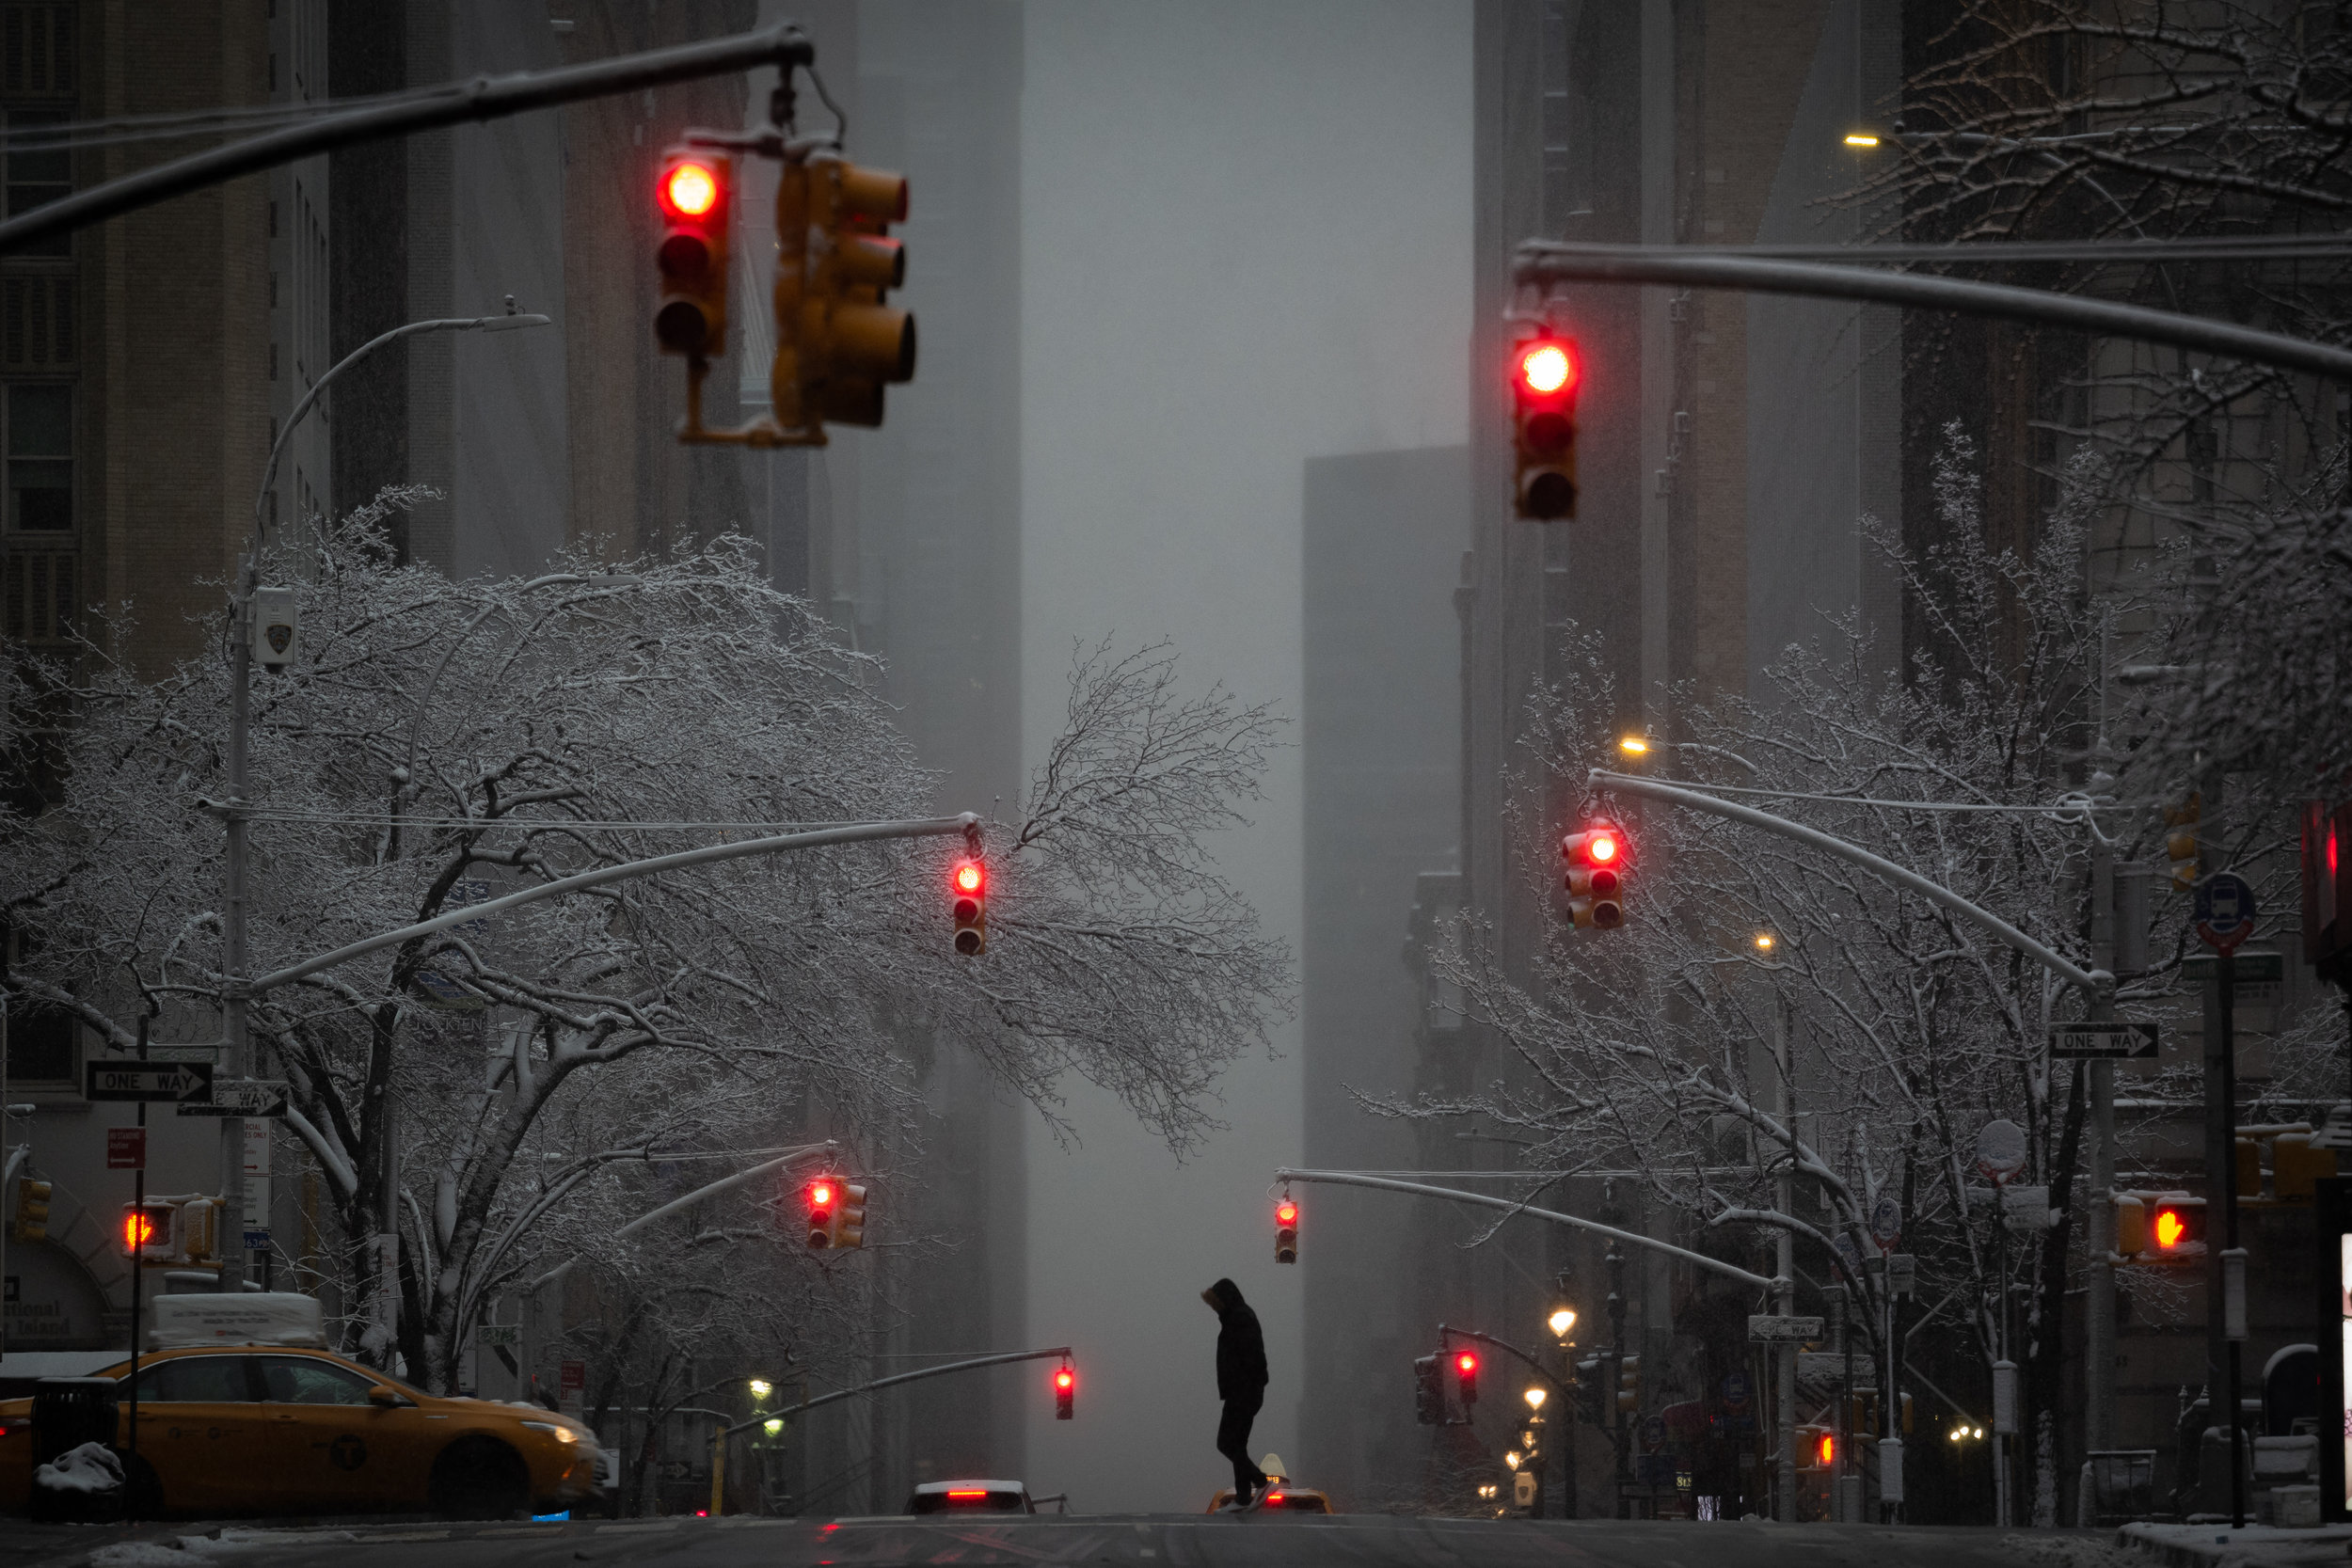 Lot 587 Snow on Madison Avenue - Photograph